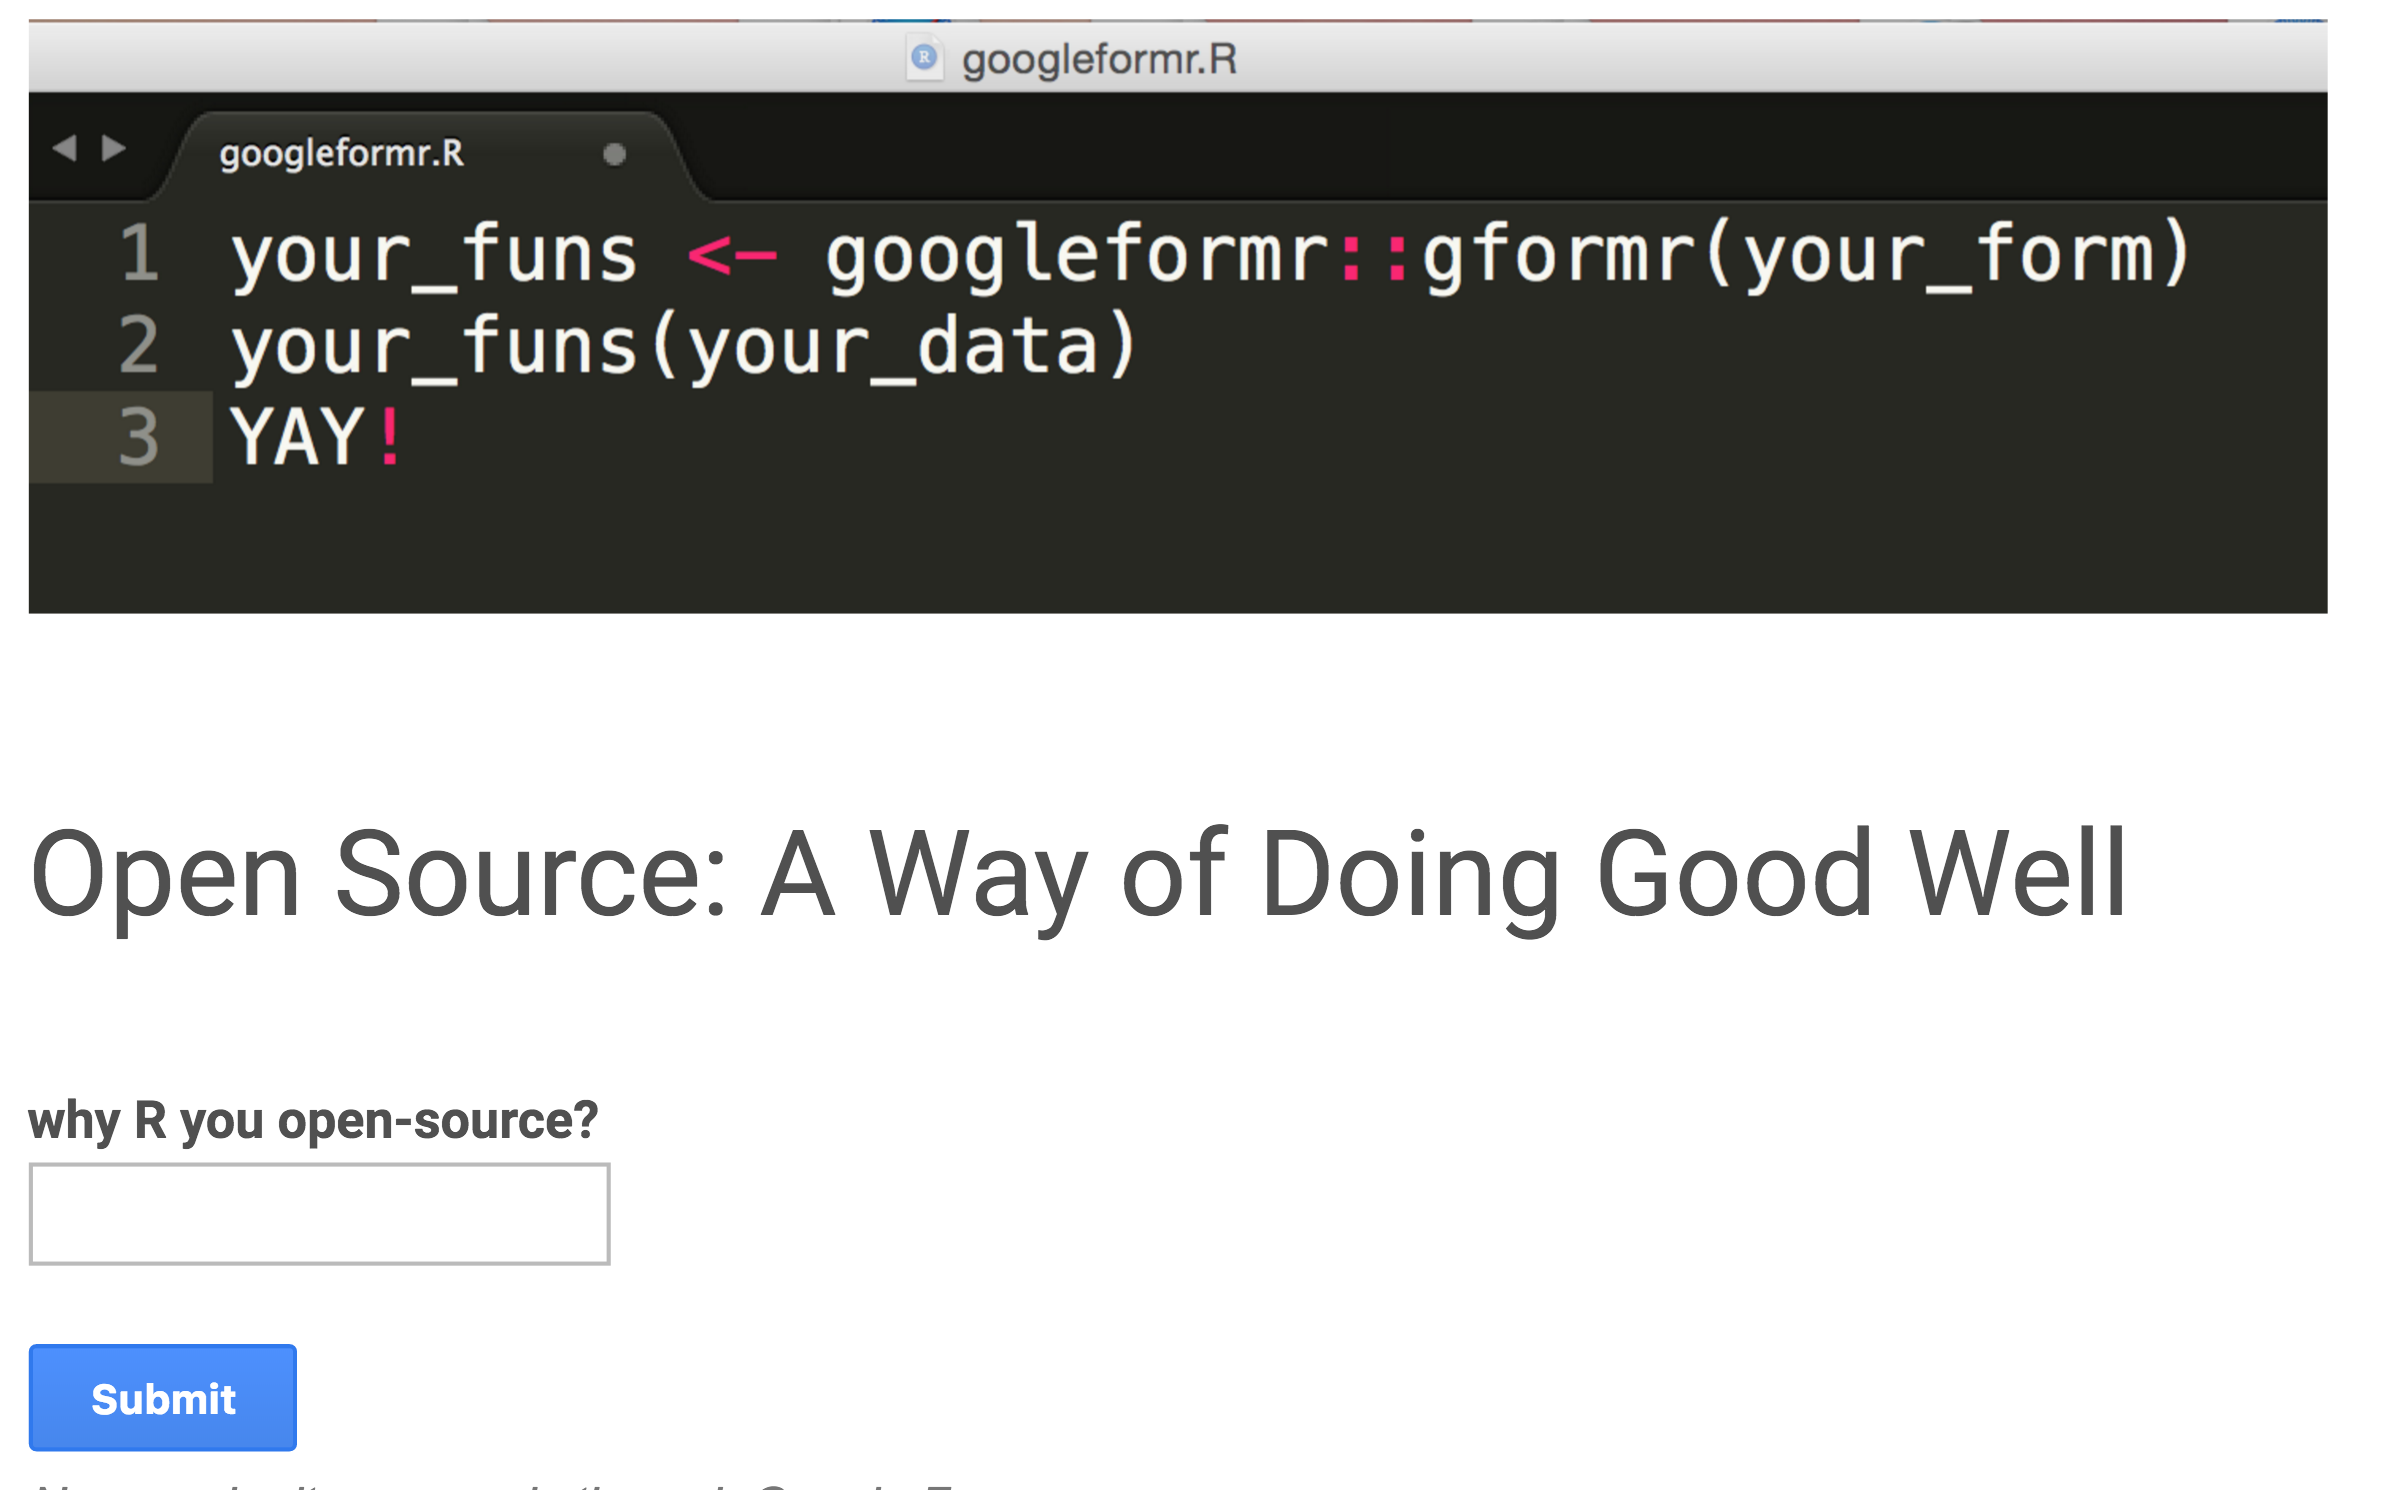 googleformr asks – why R u open-source?